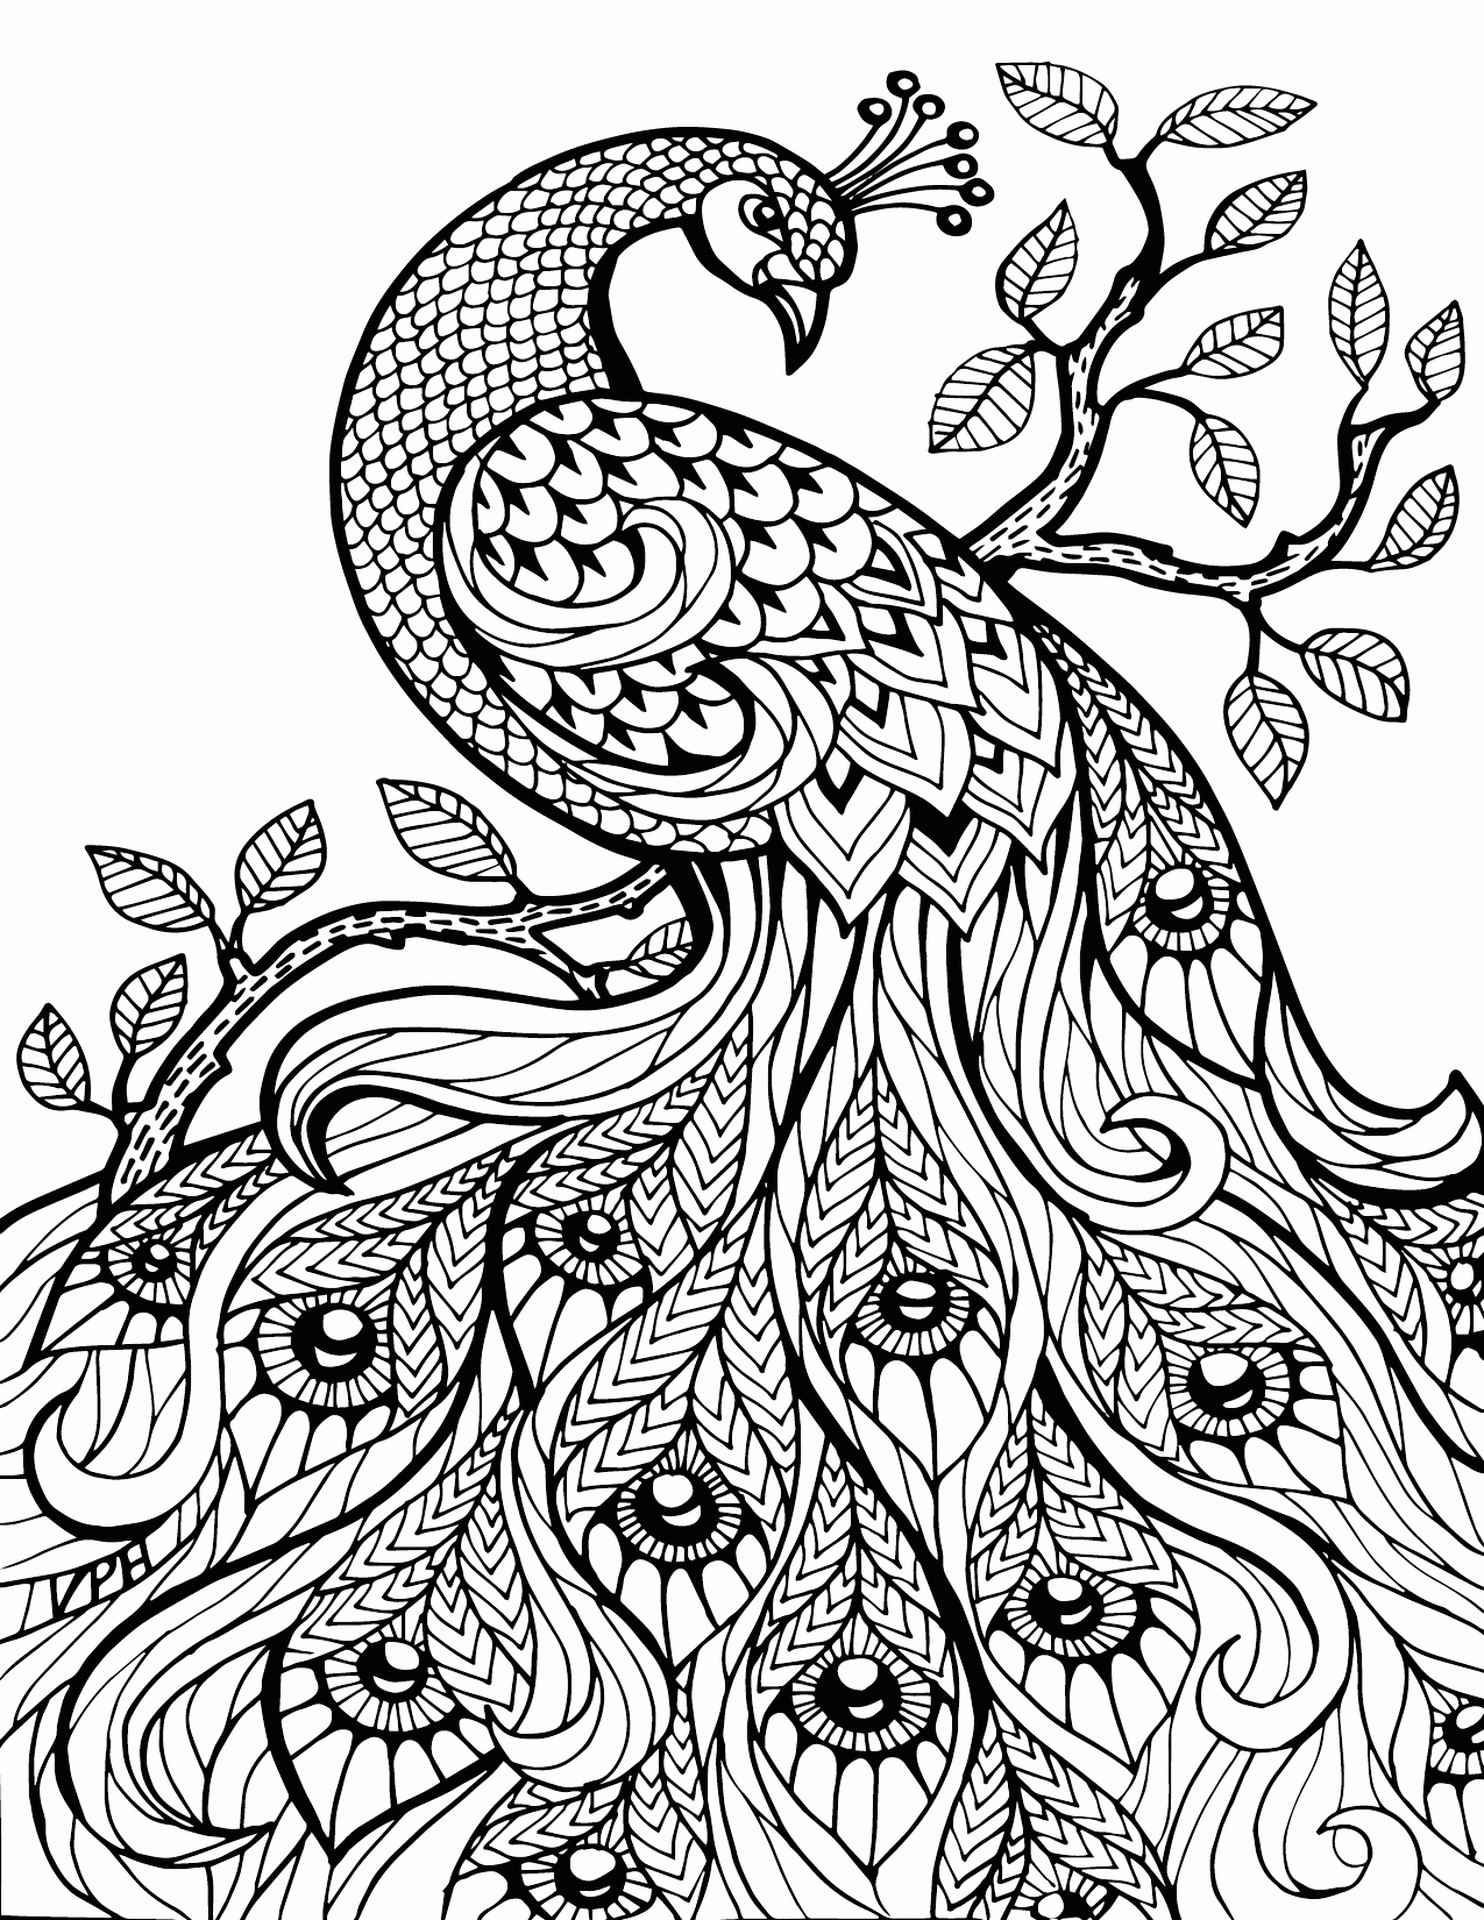 Awesome Peacock Adult Coloring Page